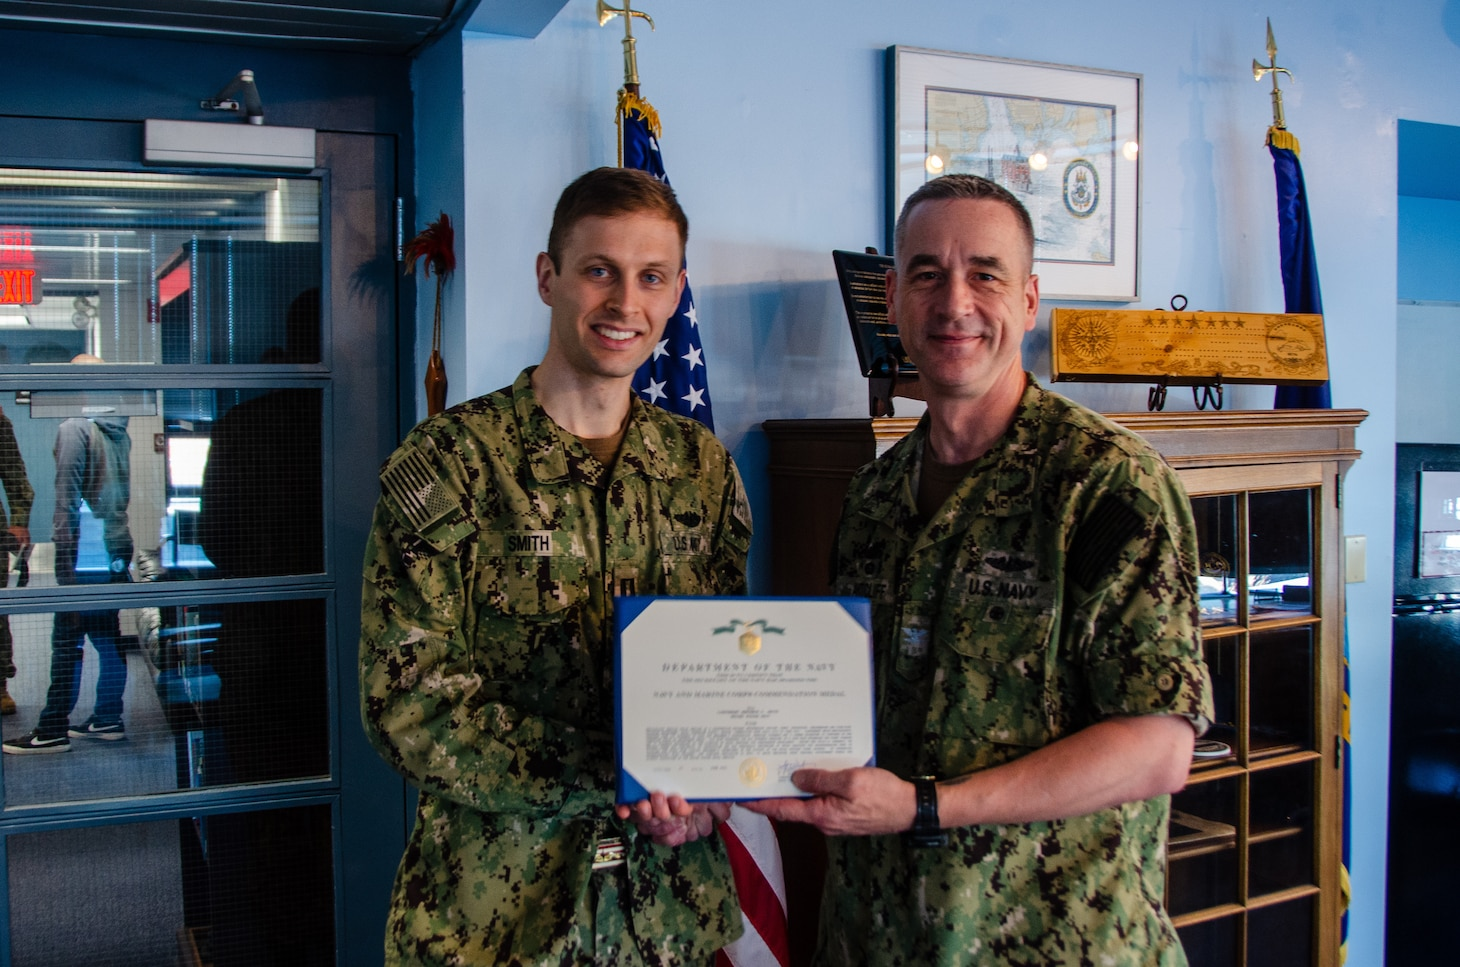 Lt. Benjamin D. Smith is presented the Navy and Marine Corps Commendation Medal as an end-of-tour award by Capt. Steven W. Antcliff, commanding officer, Naval Submarine School, aboard Naval Submarine Base New London in Groton, CT on May 19, 2021. As the Prospective Nuclear Engineering Officer (PNEO) for the Naval Submarine School, Smith ensured that over 150 office students passed the engineer examination, providing highly qualified new department heads to the submarine force. Additionally, Smith's innovation which allowed for continued instruction with no interruption to the training pipeline during the COVID-19 pandemic. (U.S. Navy photo by Charles E. Spirtos)